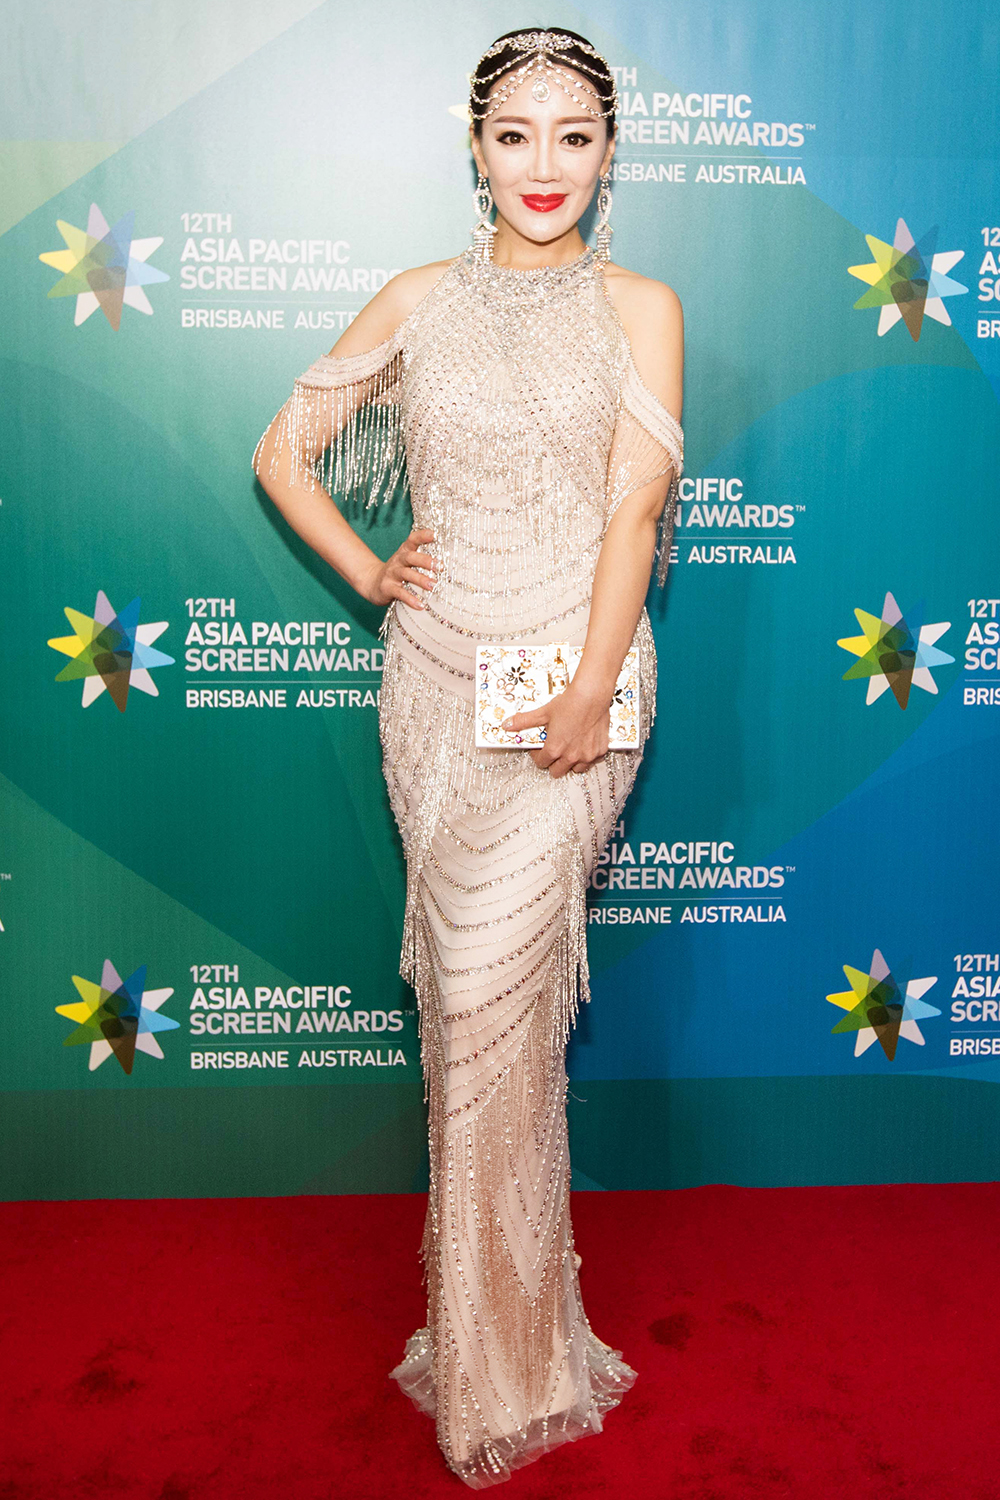 Fashion Red Carpet Pose at the APSA held in Brisbane